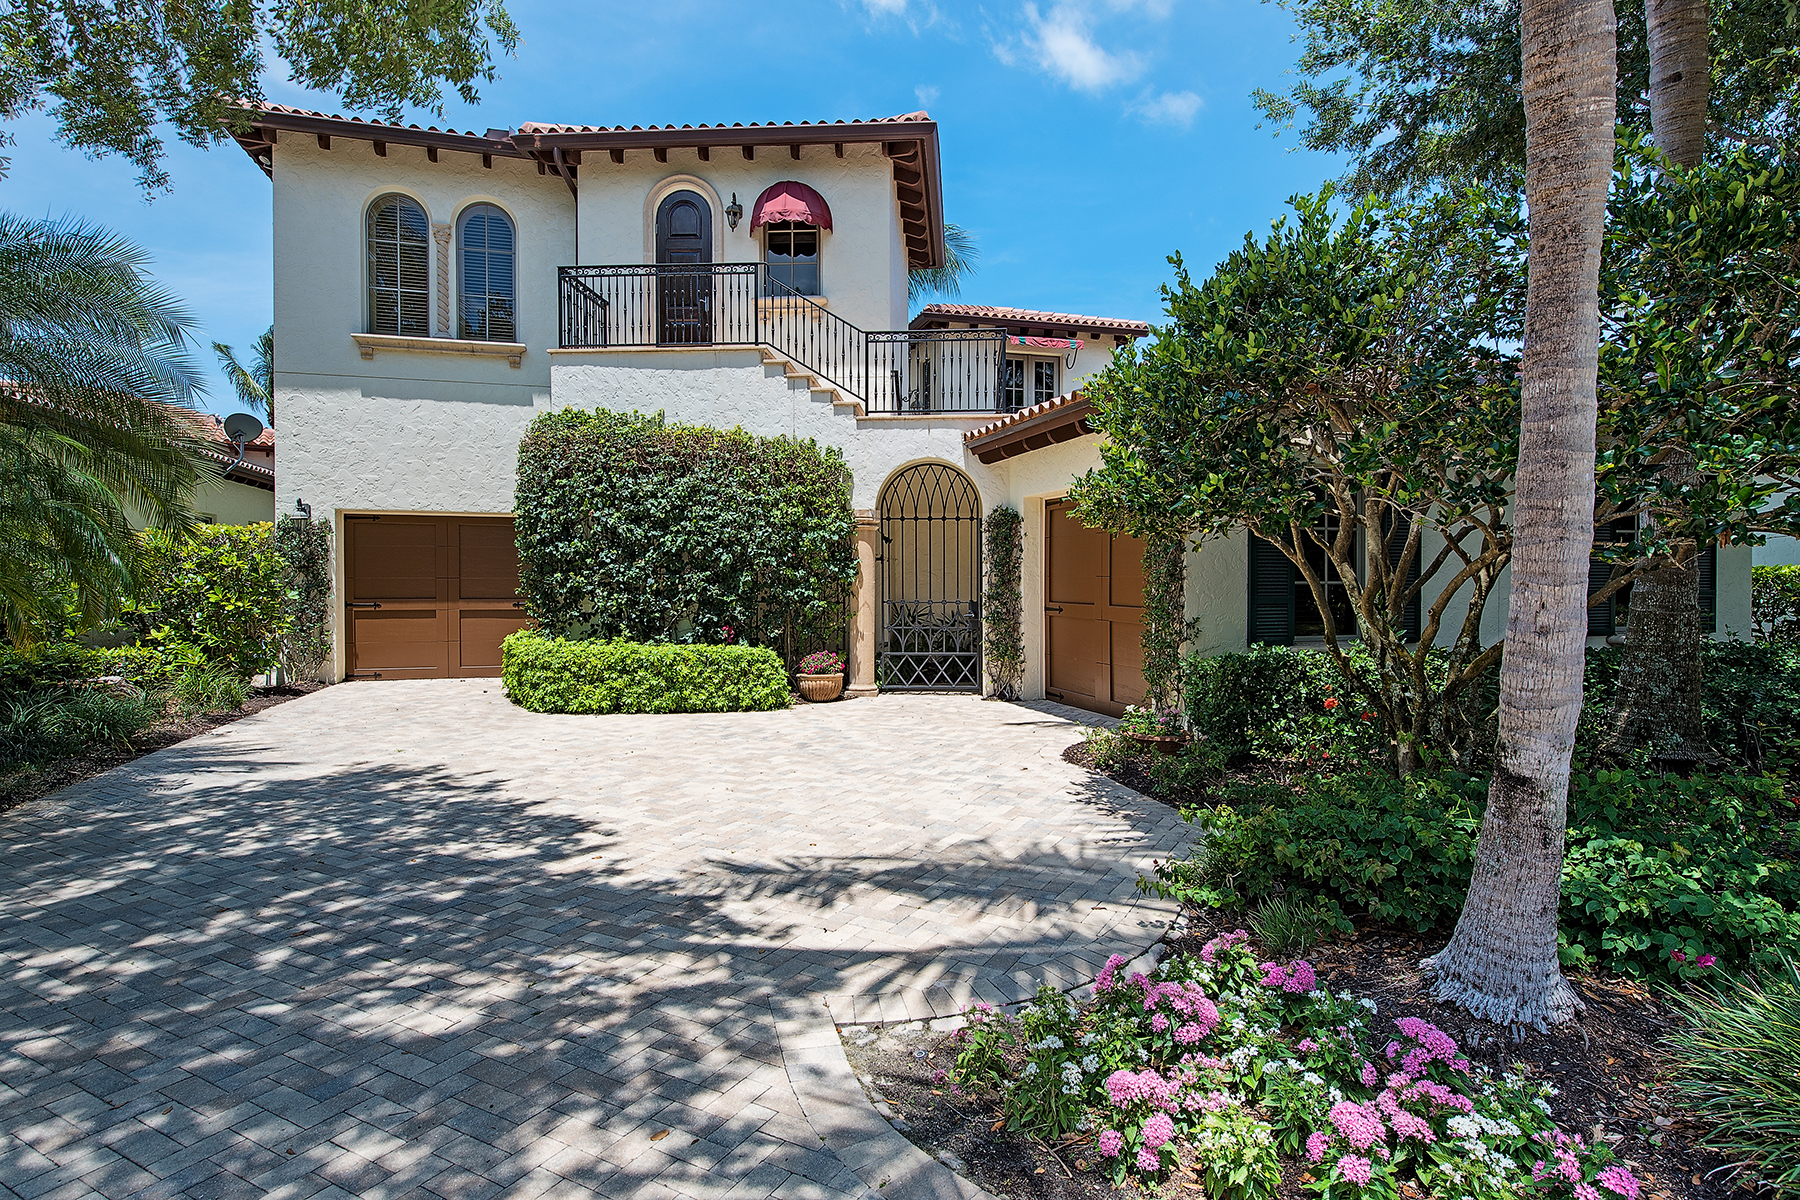 Single Family Home for Sale at Estuary at Grey Oaks 1347 Noble Heron Way Grey Oaks, Naples, Florida, 34105 United States